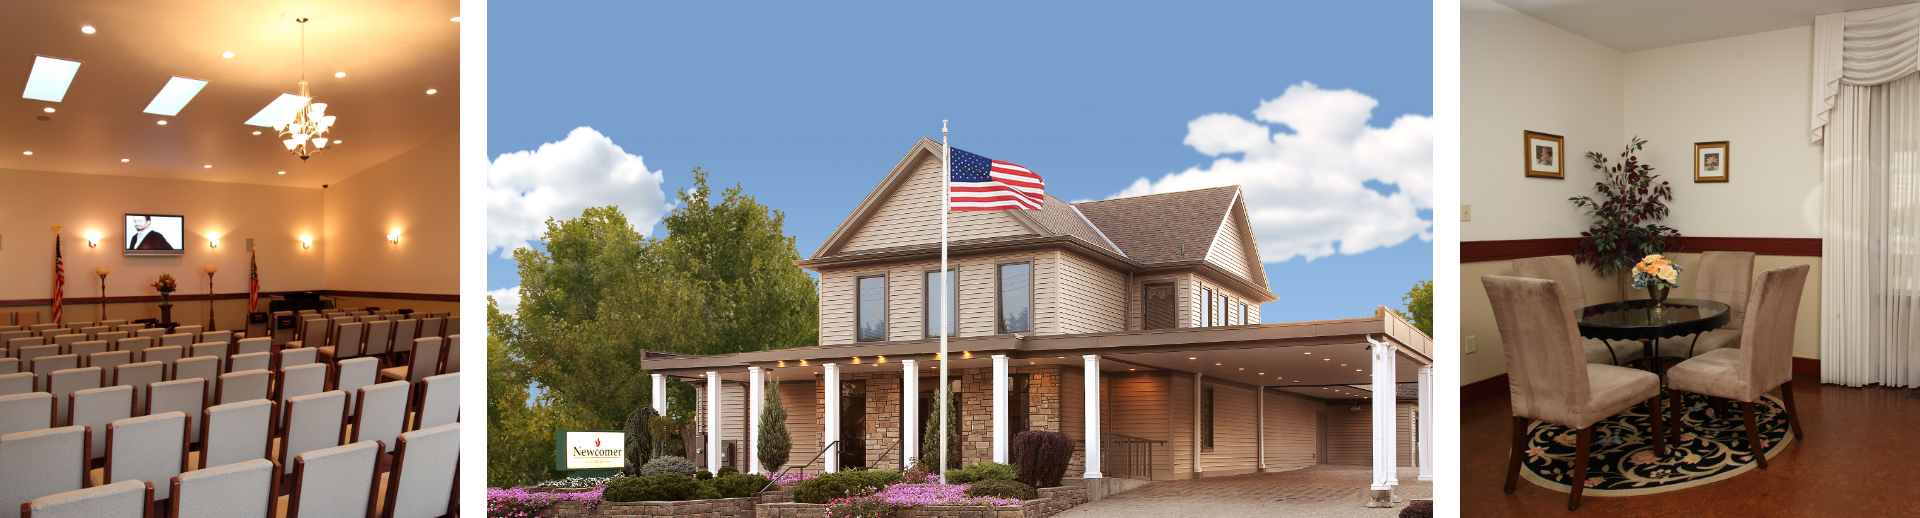 Funeral-Home-Northwest-Cincinnati-OH